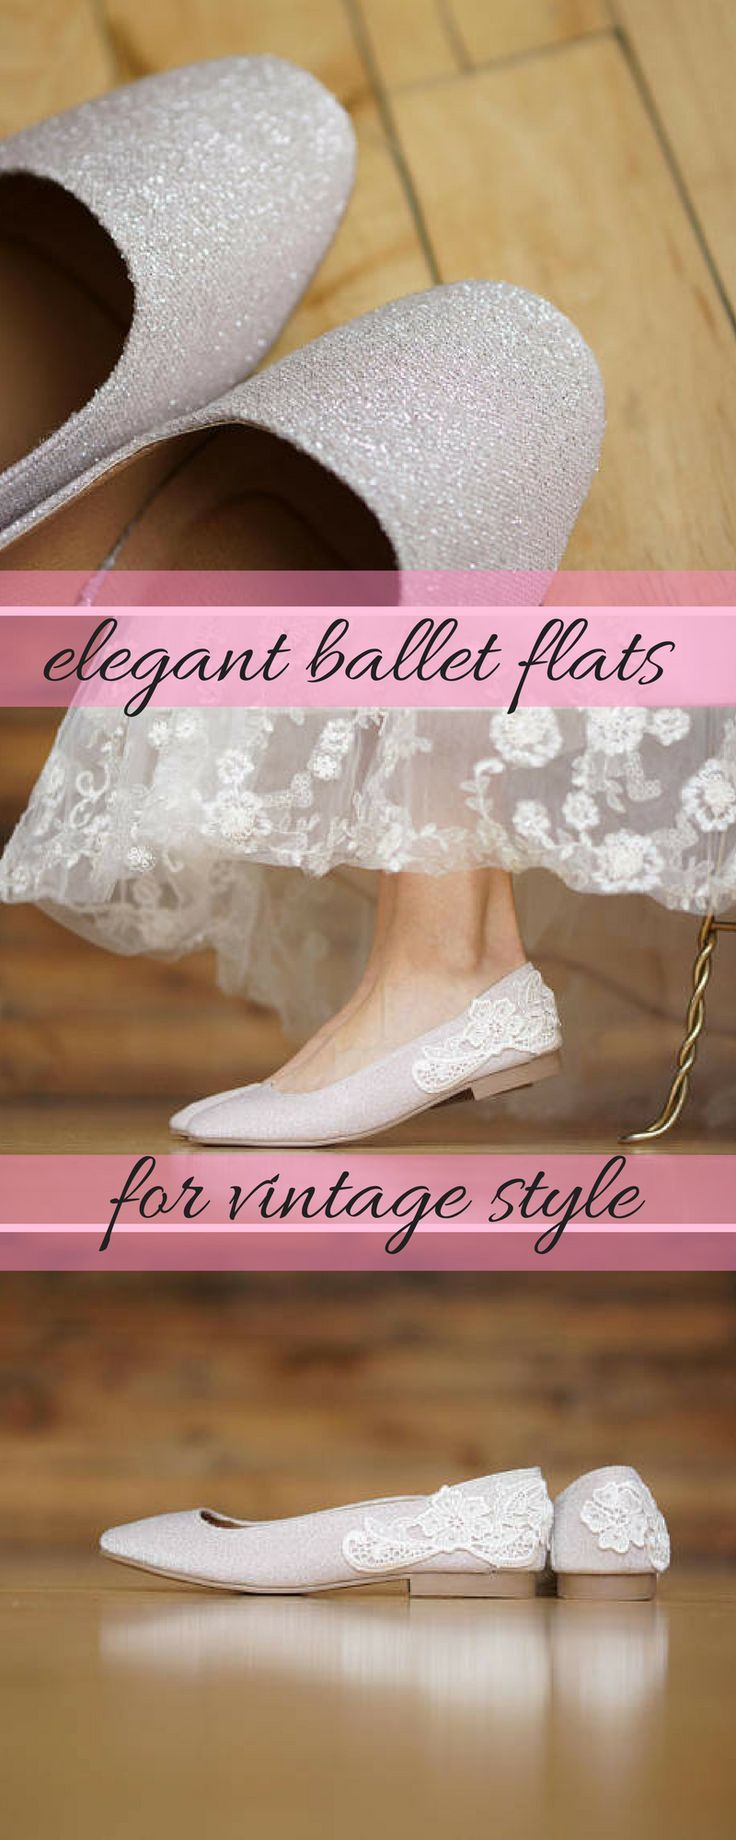 Champagne Shimmer ballet flats are perfect for tea length dresses or for the moment when you kick your heels of and shimmy to the dancefloor. #weddingshoes #balletpumps #vintagestylewedding #weddingshoeswithlace #ad